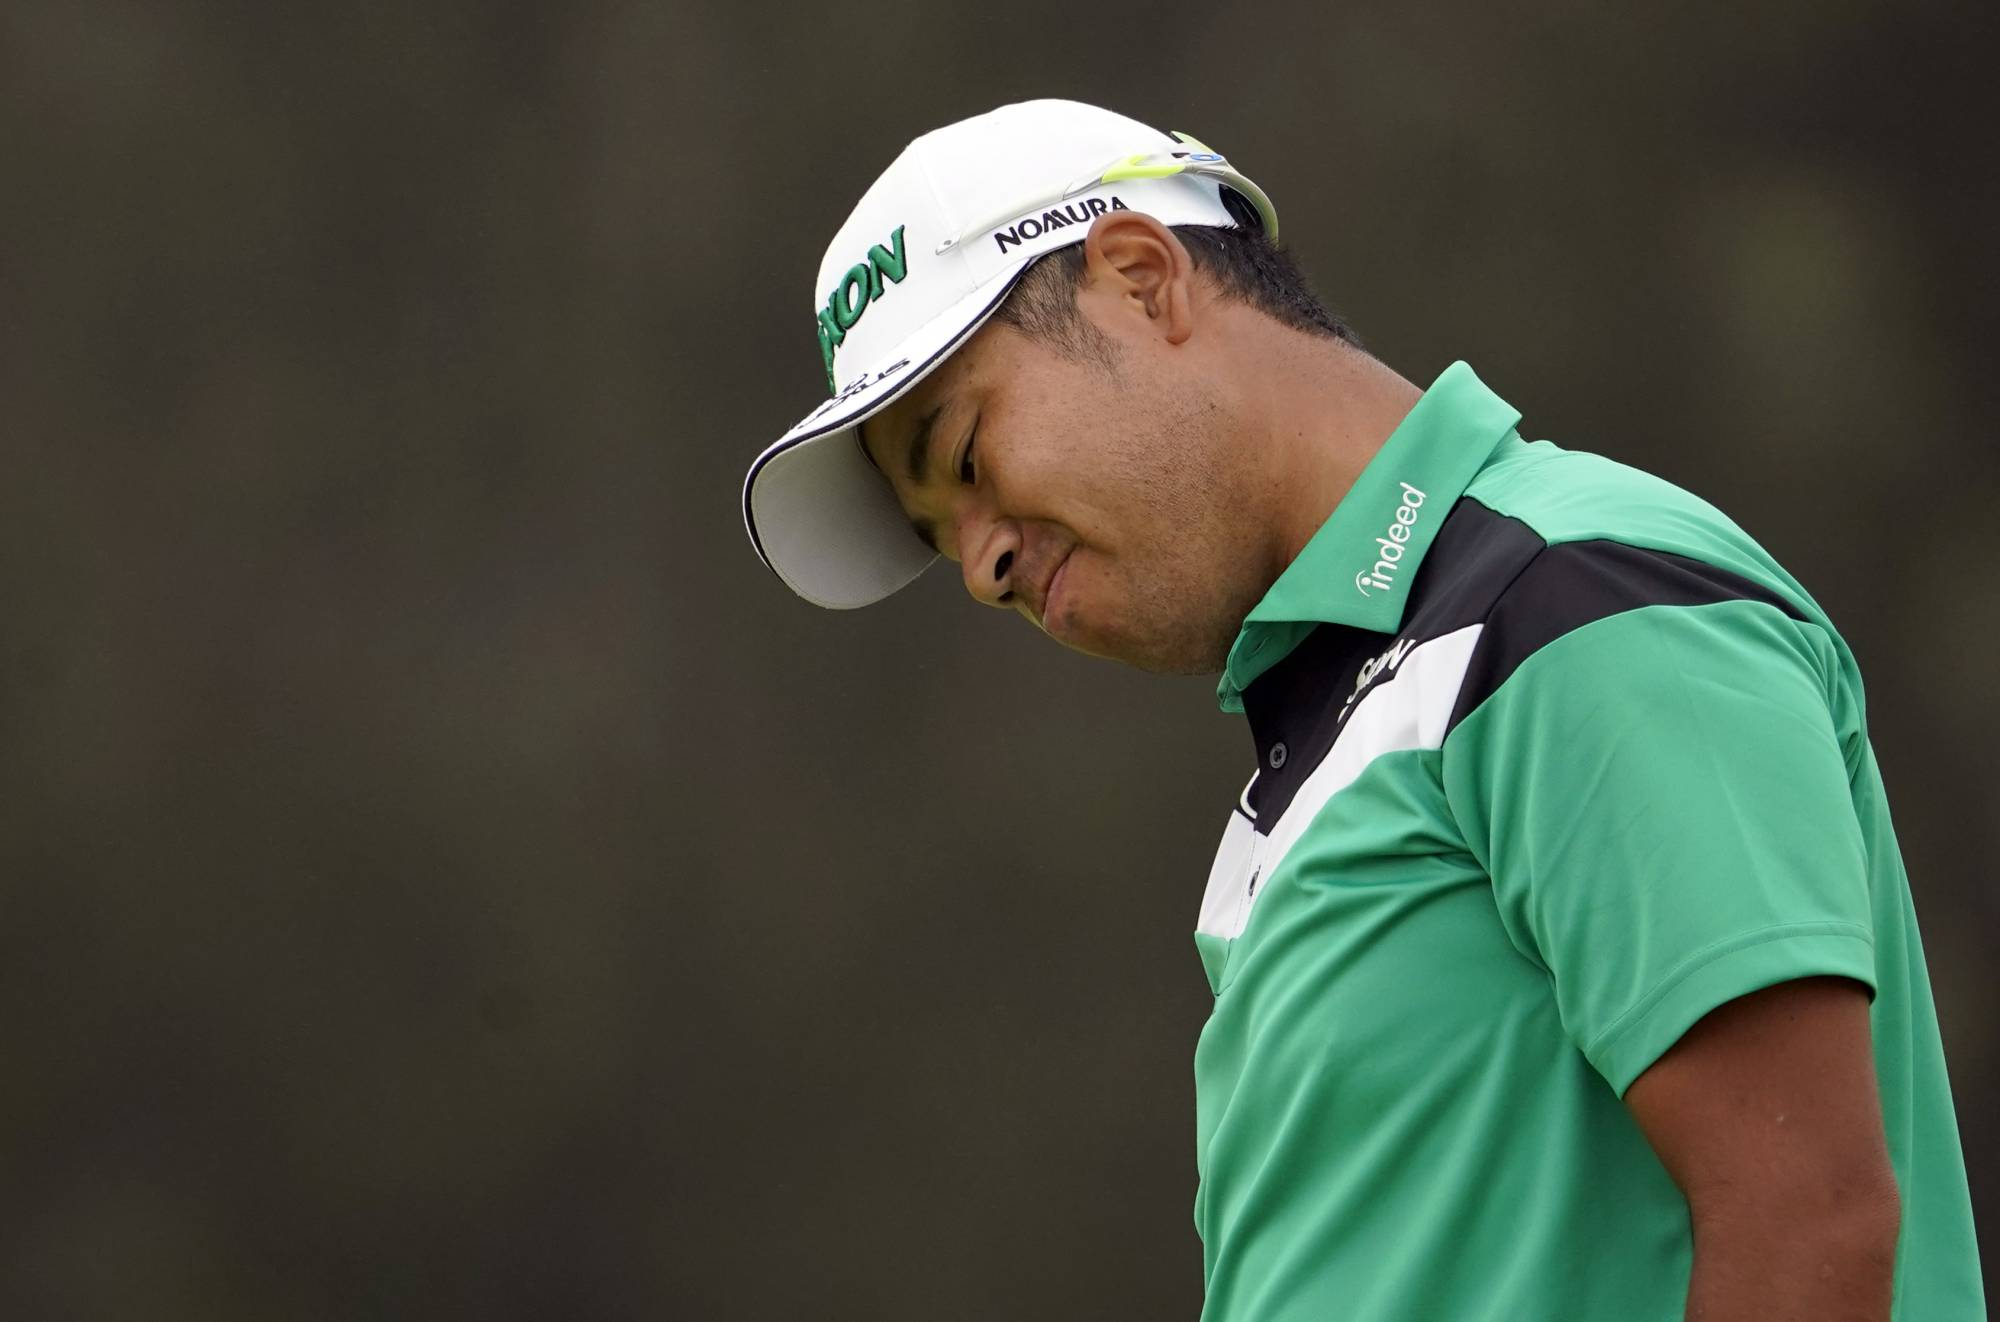 Continued positive COVID-19 tests have forced Hideki Matsuyama to withdraw from the British Open. | USA TODAY / VIA REUTERS